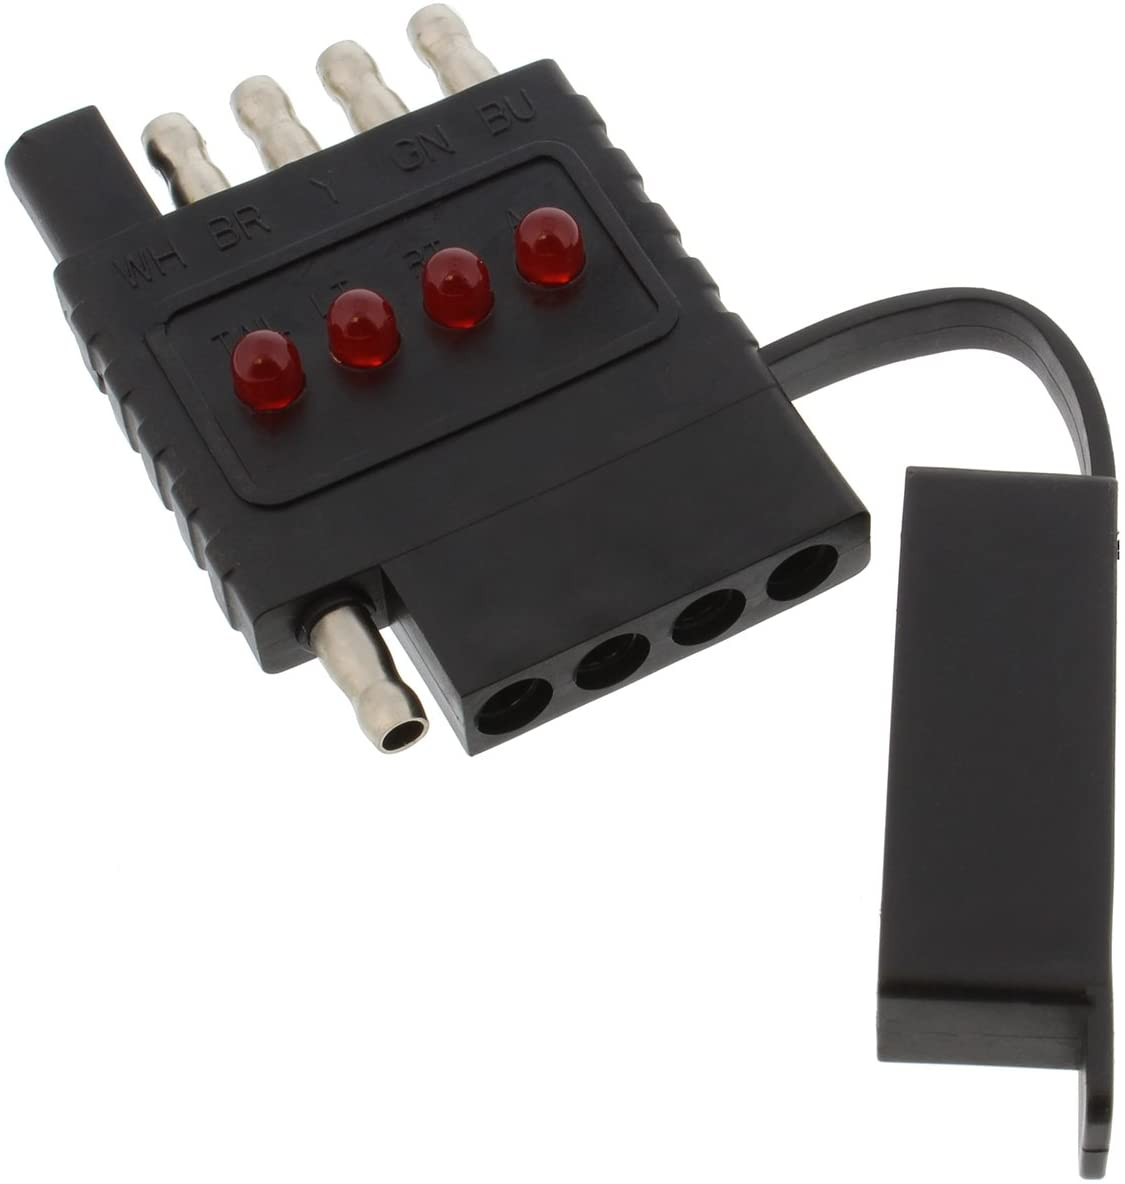 ABN 5 Way Trailer Light Inline Circuit Tester – 12V with LED Output for Quick and Easy Results